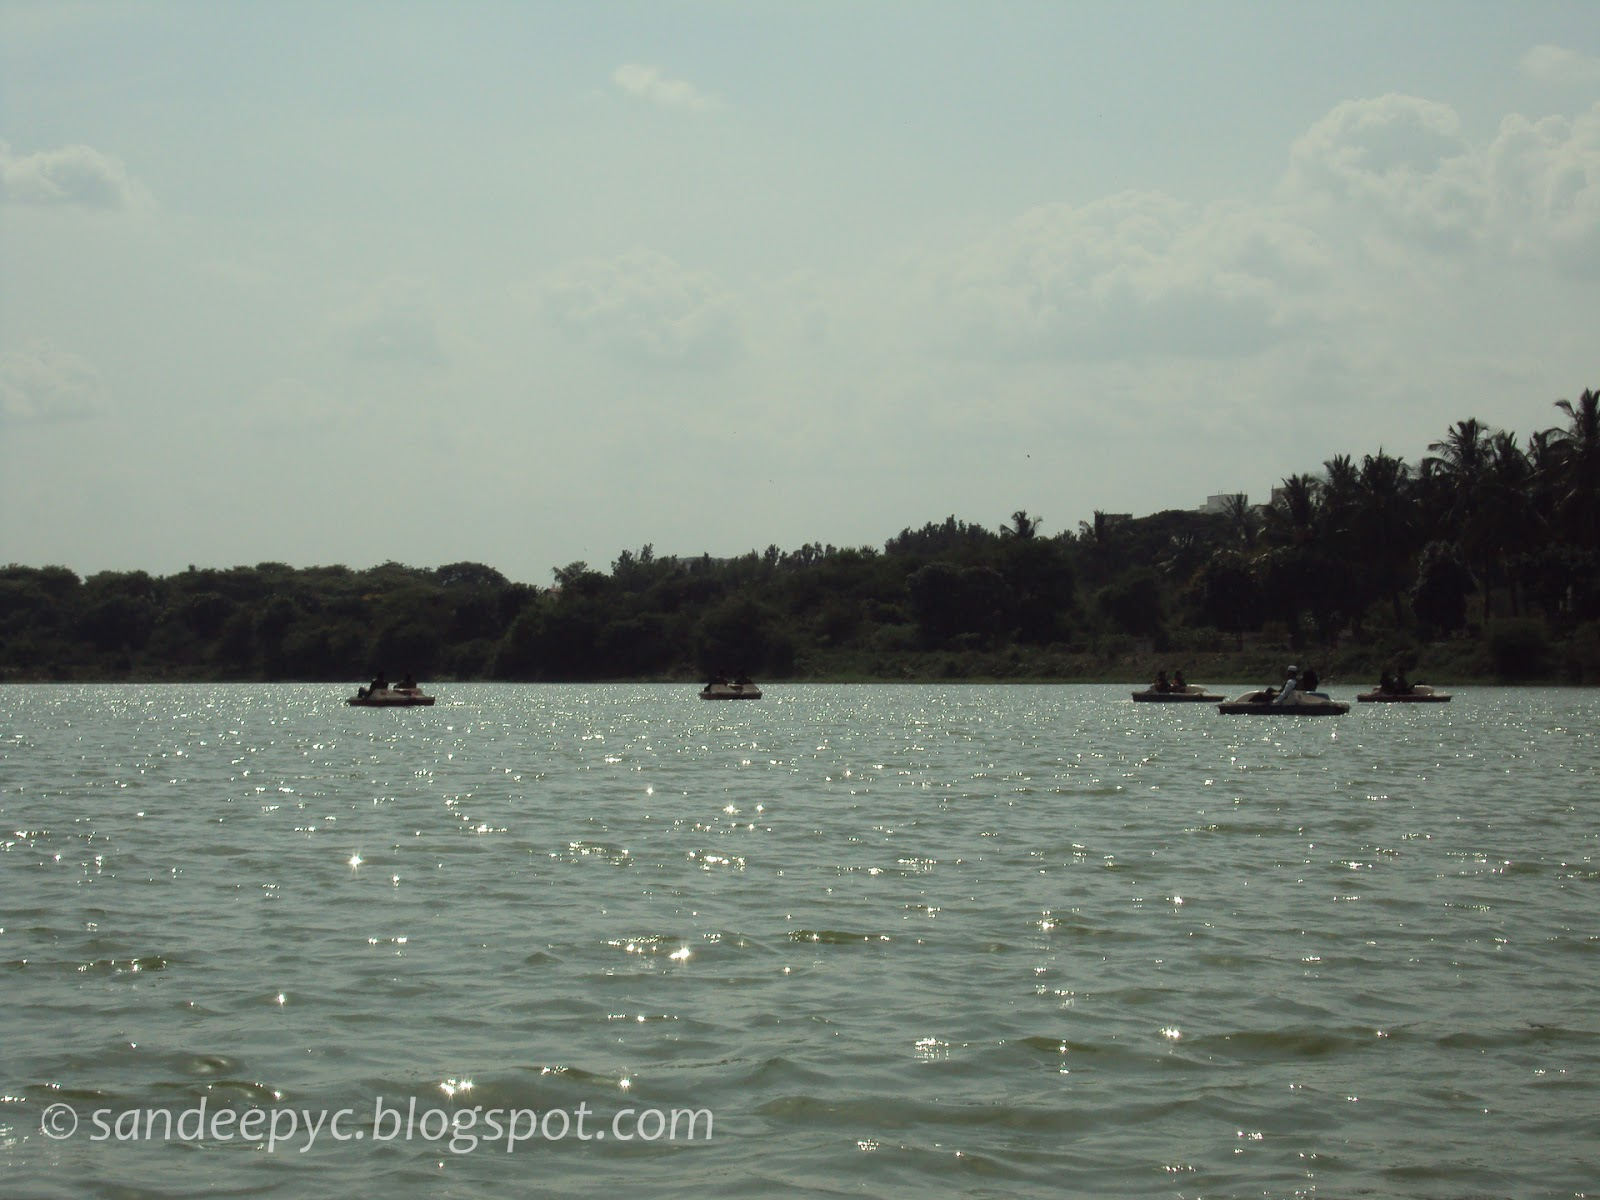 boating at nagavara lake